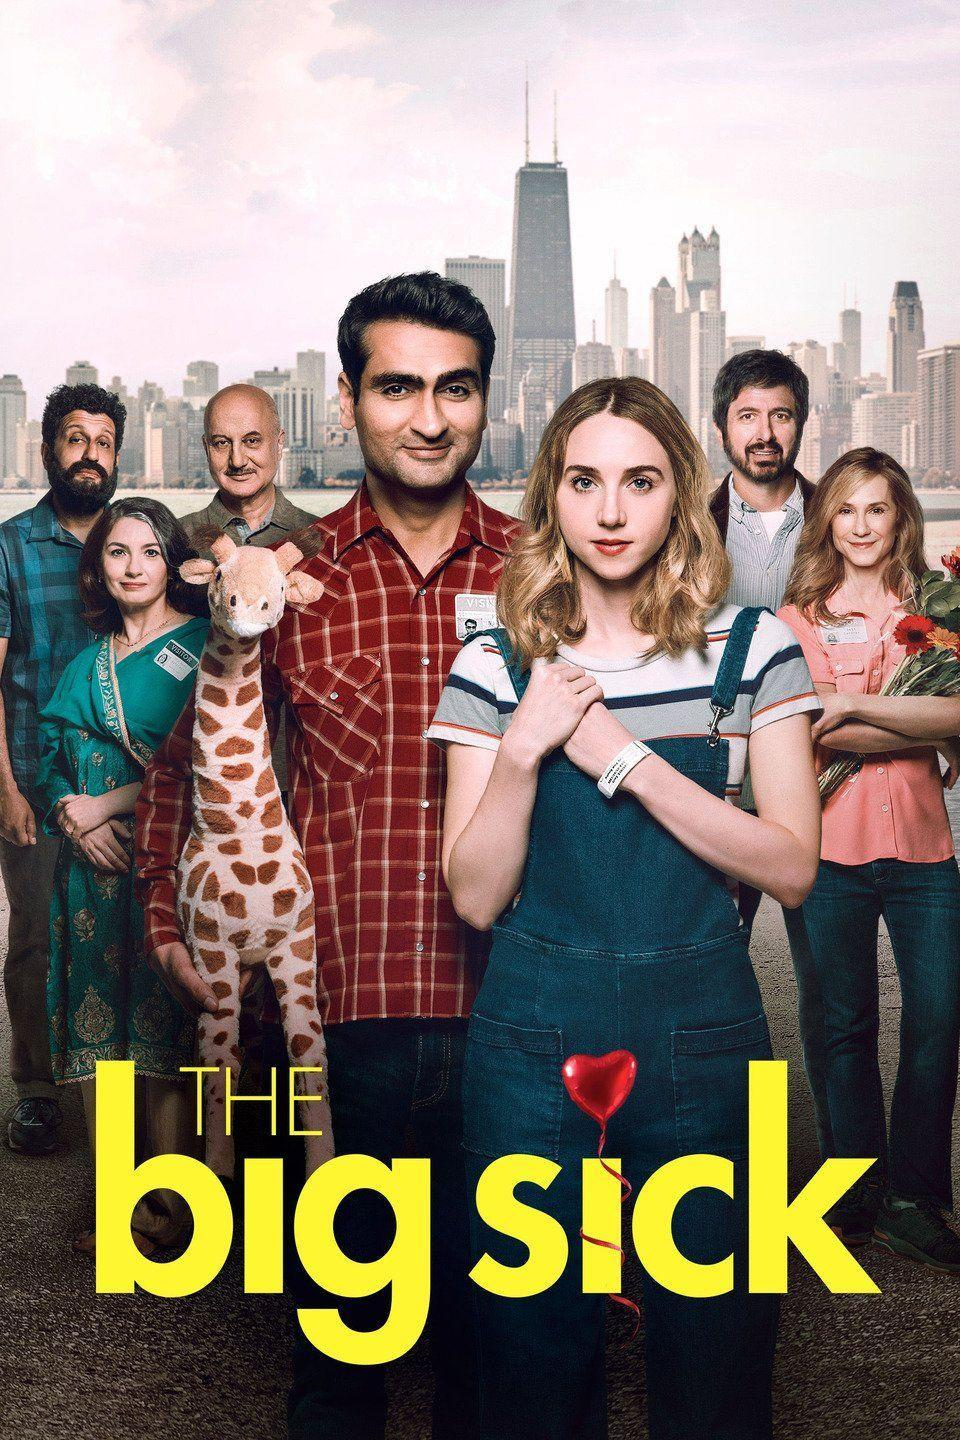 """<p><a class=""""link rapid-noclick-resp"""" href=""""https://www.amazon.com/Big-Sick-Amazon-Original-Movie/dp/B07193L7RD?tag=syn-yahoo-20&ascsubtag=%5Bartid%7C10063.g.35716832%5Bsrc%7Cyahoo-us"""" rel=""""nofollow noopener"""" target=""""_blank"""" data-ylk=""""slk:Watch Now"""">Watch Now</a></p><p>These days, Kumail Nanjiani and Emily V. Gordon are a comedic power couple. But, as <em>The Big Sick</em> shows, they almost didn't end up together at all. Najiani and Gordon co-wrote this rom-com about the very real, very traumatic medical emergency that brought them together.</p>"""